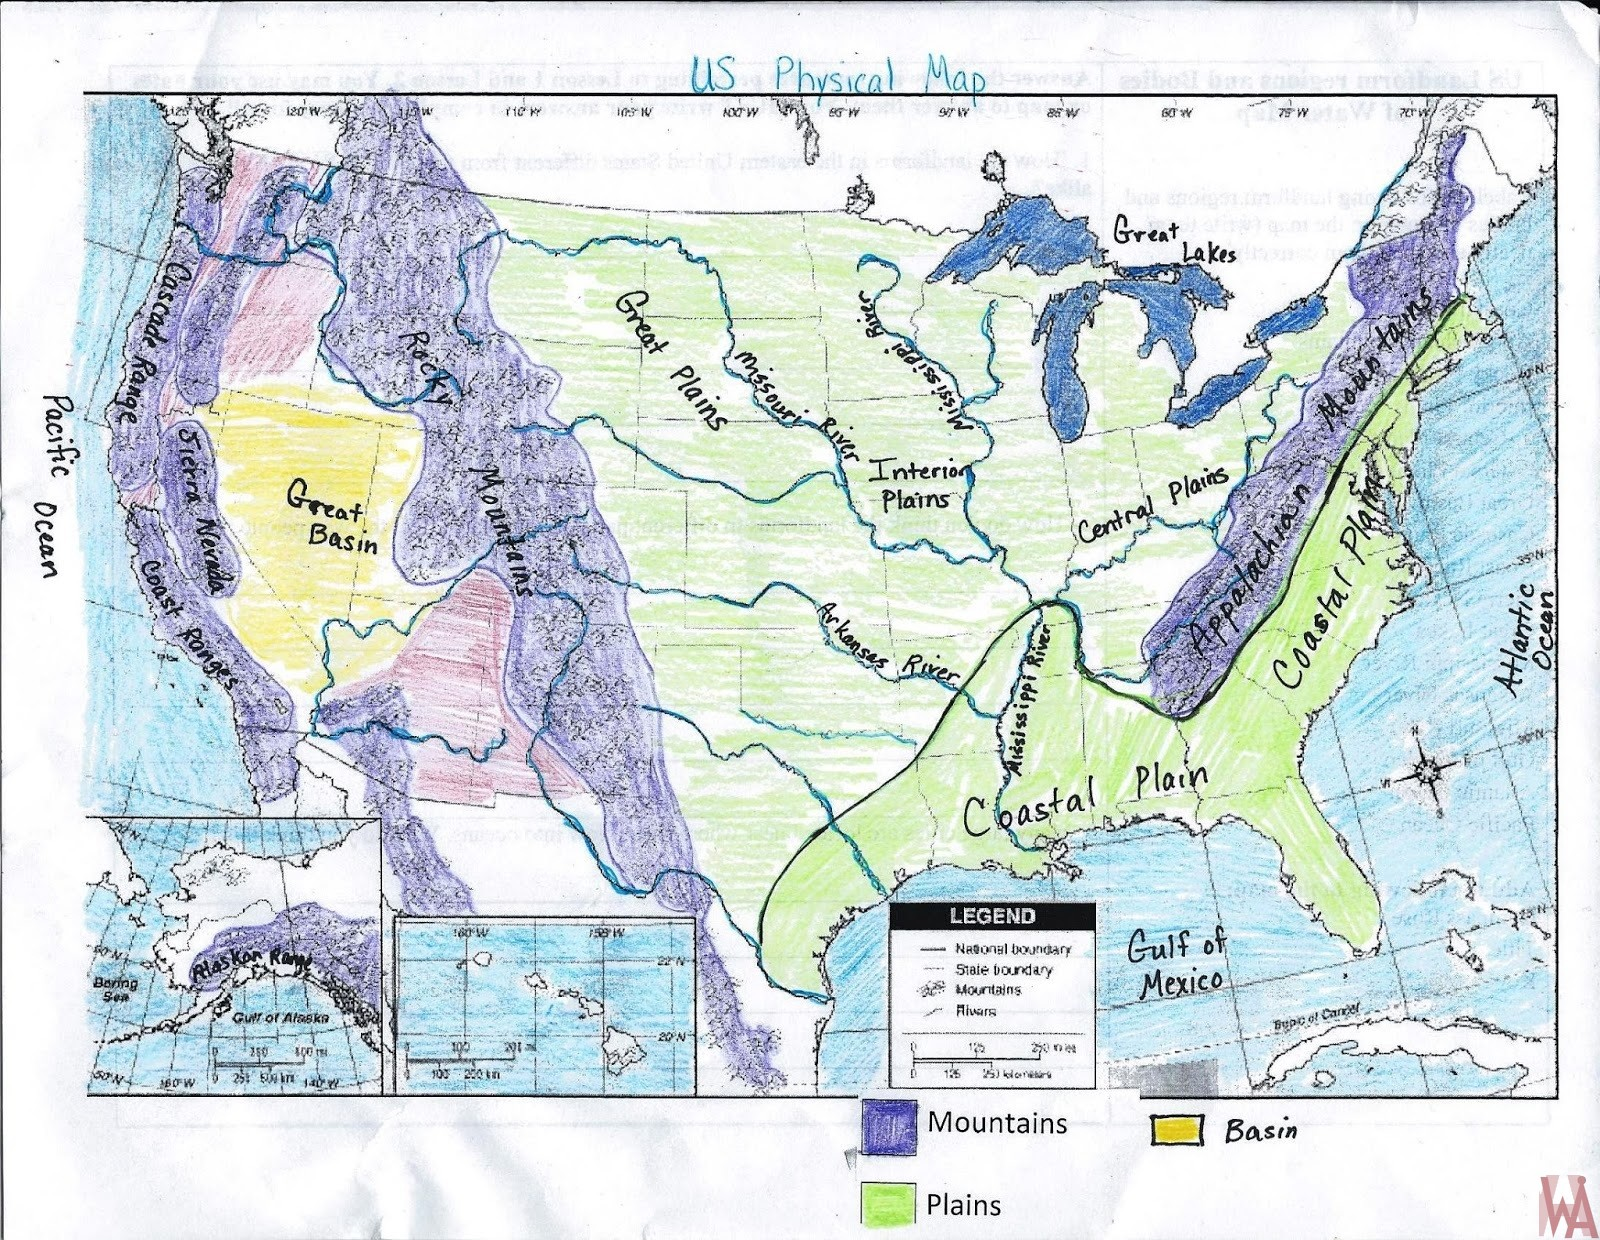 HandMade United States Rivers, Lakes, Water Flows, Mountain And Basin Map